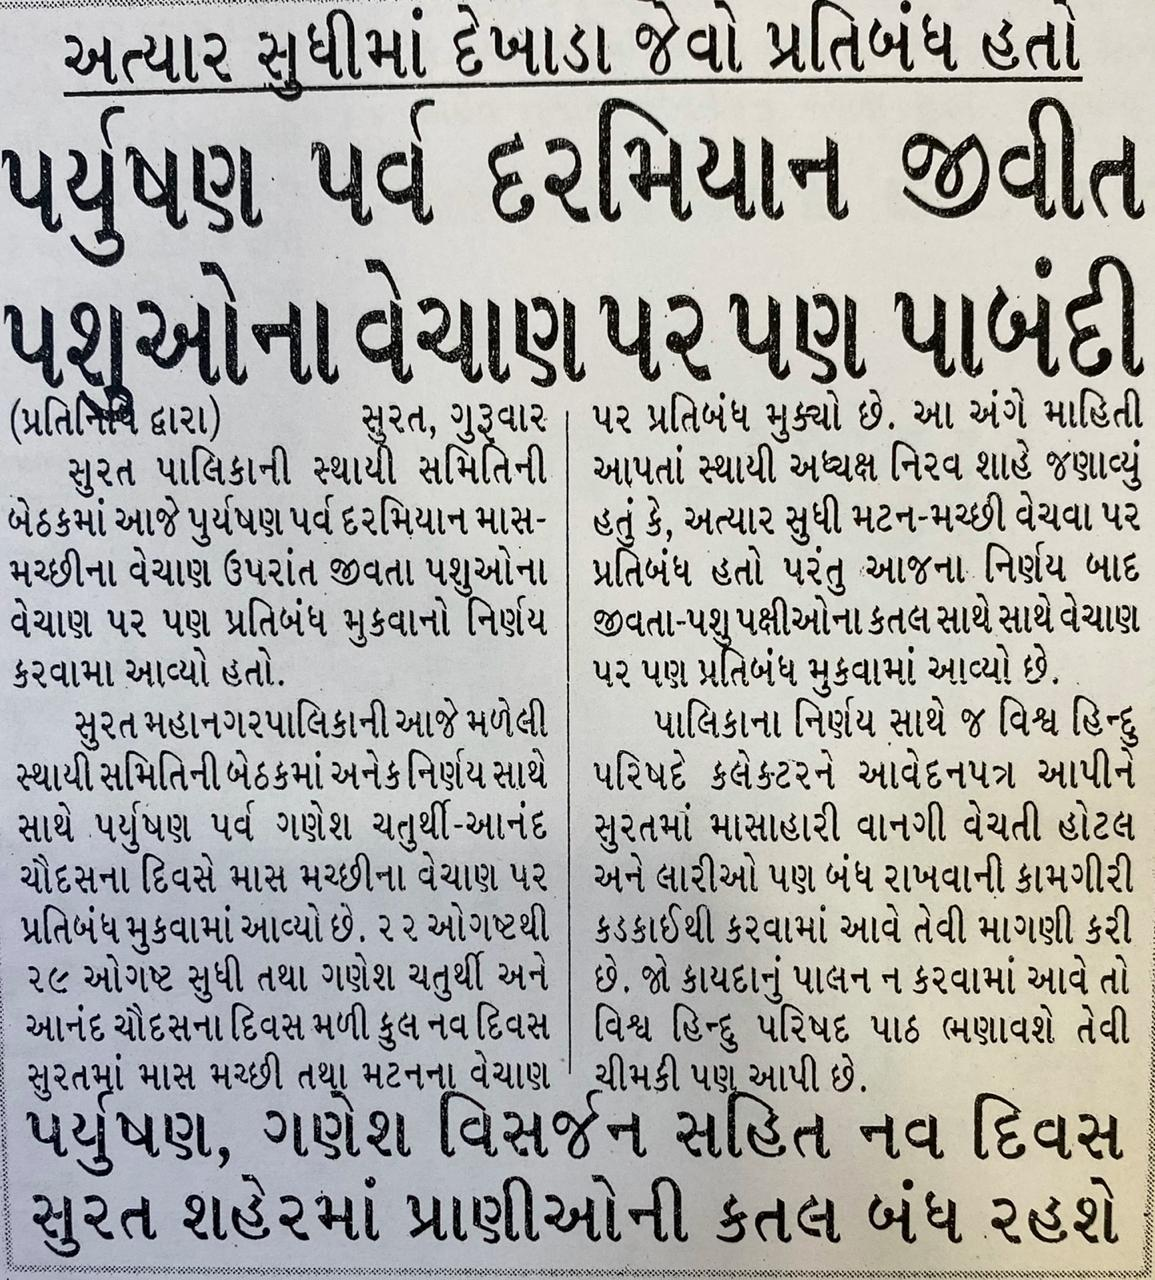 News article on the occasion of Jain paryushan, selling of meat is banned by Nirav Shah